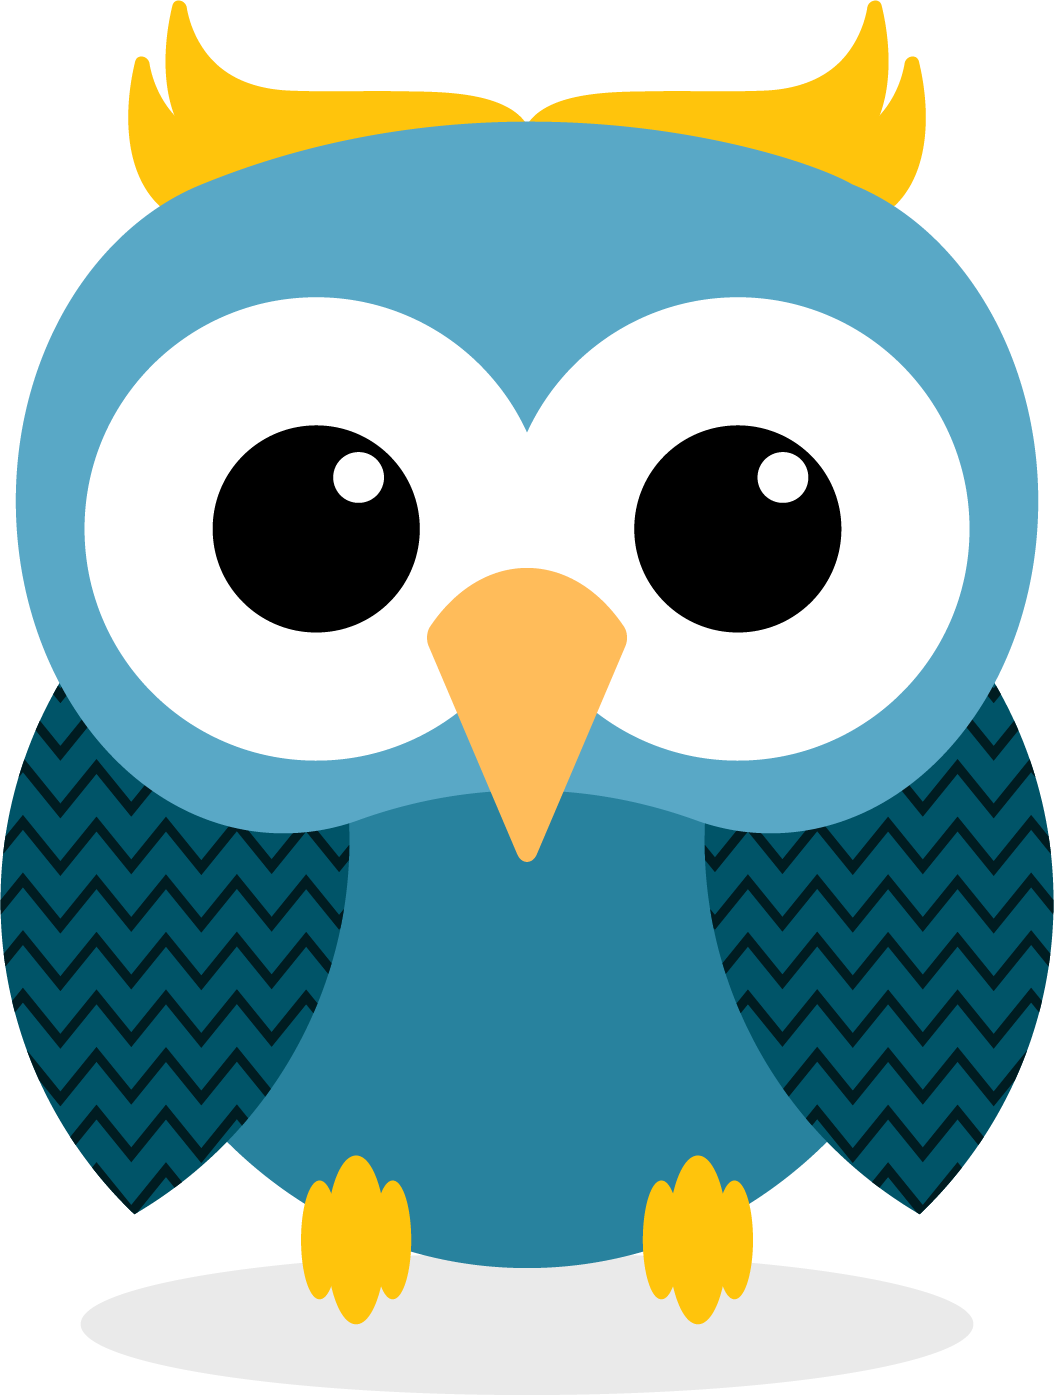 Png free images only. Owl clip art transparent background picture freeuse stock